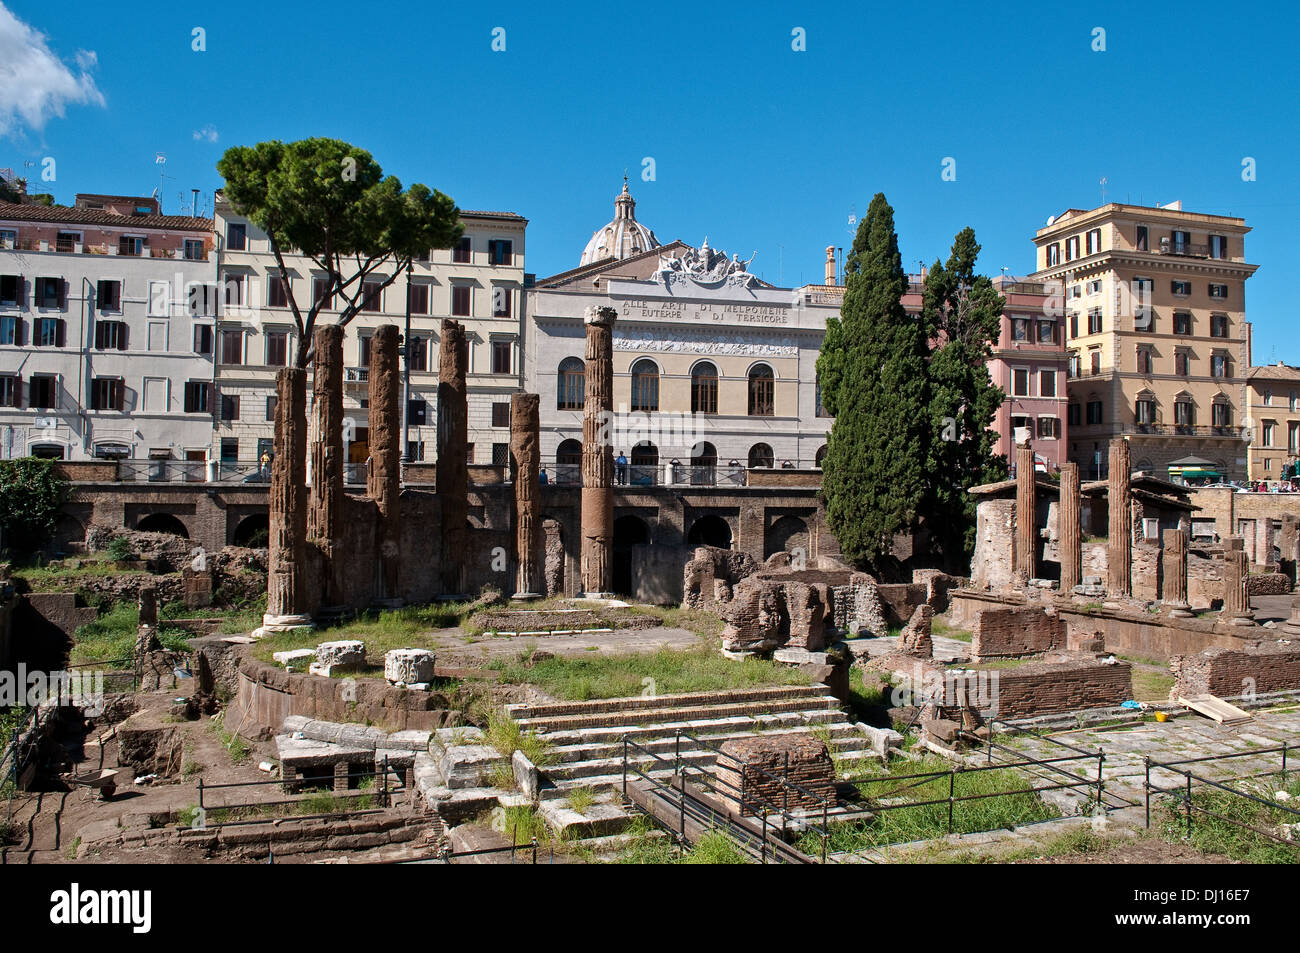 Remains of Republican Roman temples and Pompey's Theatre, and Teatro Argentina beyond, Largo di Torre Argentina, Rome, Italy - Stock Image